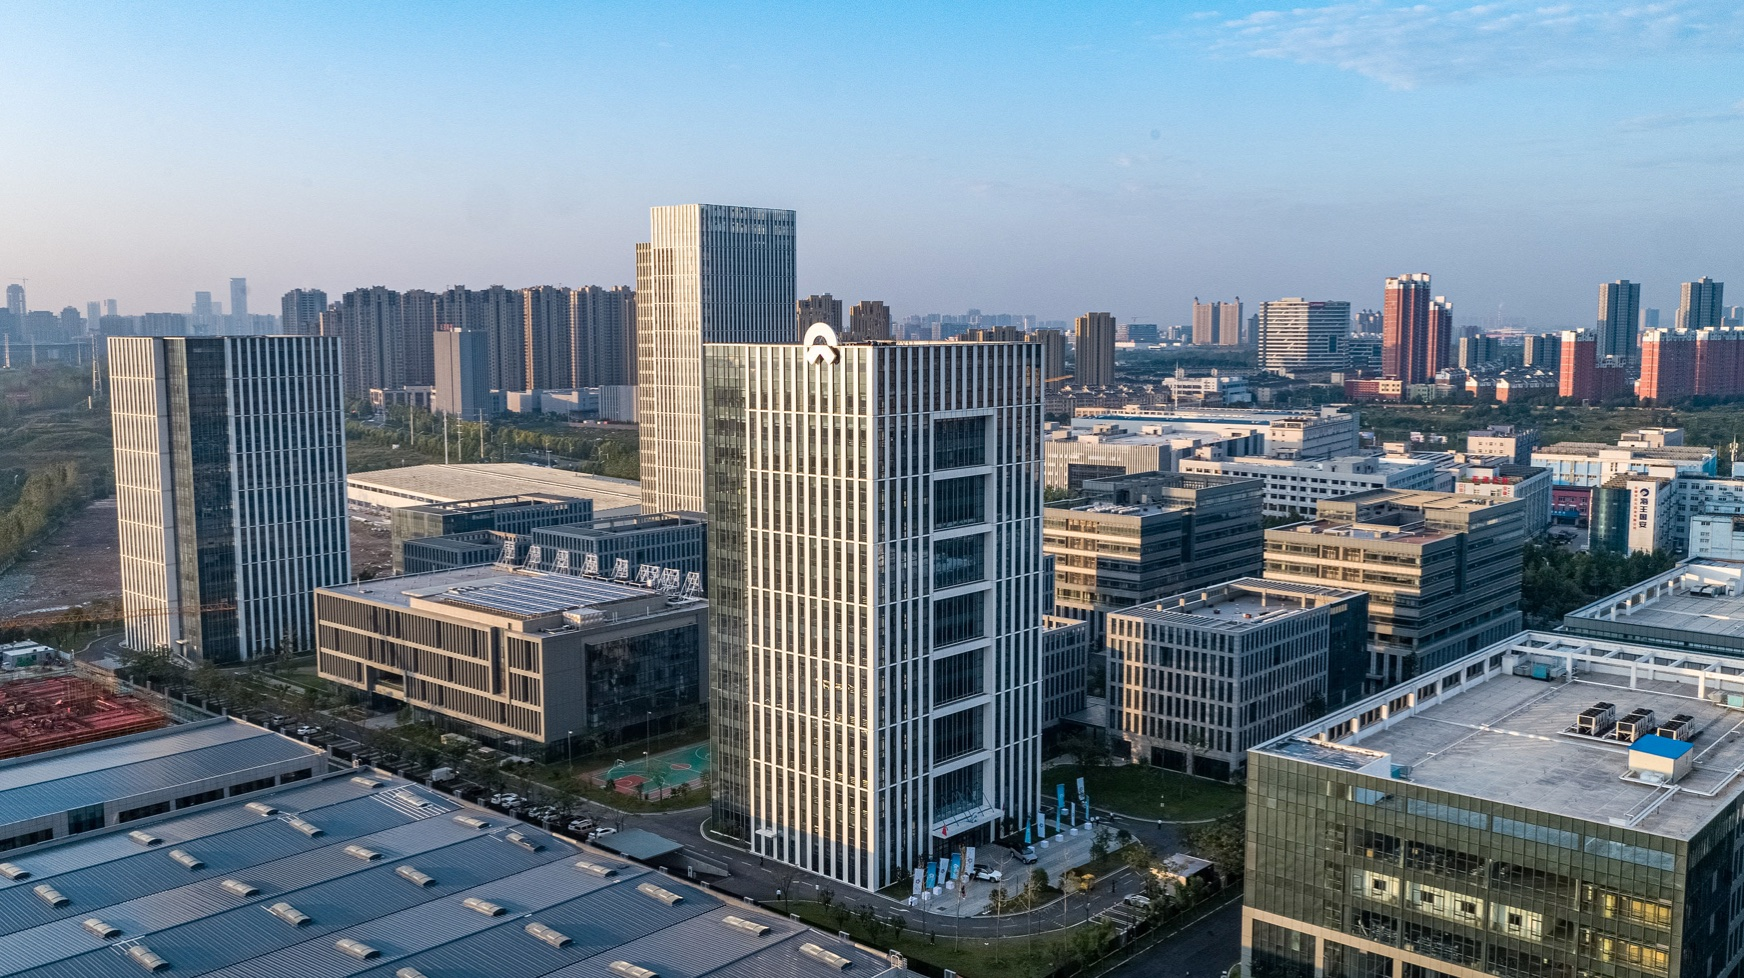 Hefei, where NIO China is headquartered, plans to introduce new policies to promote NEV industry-CnEVPost